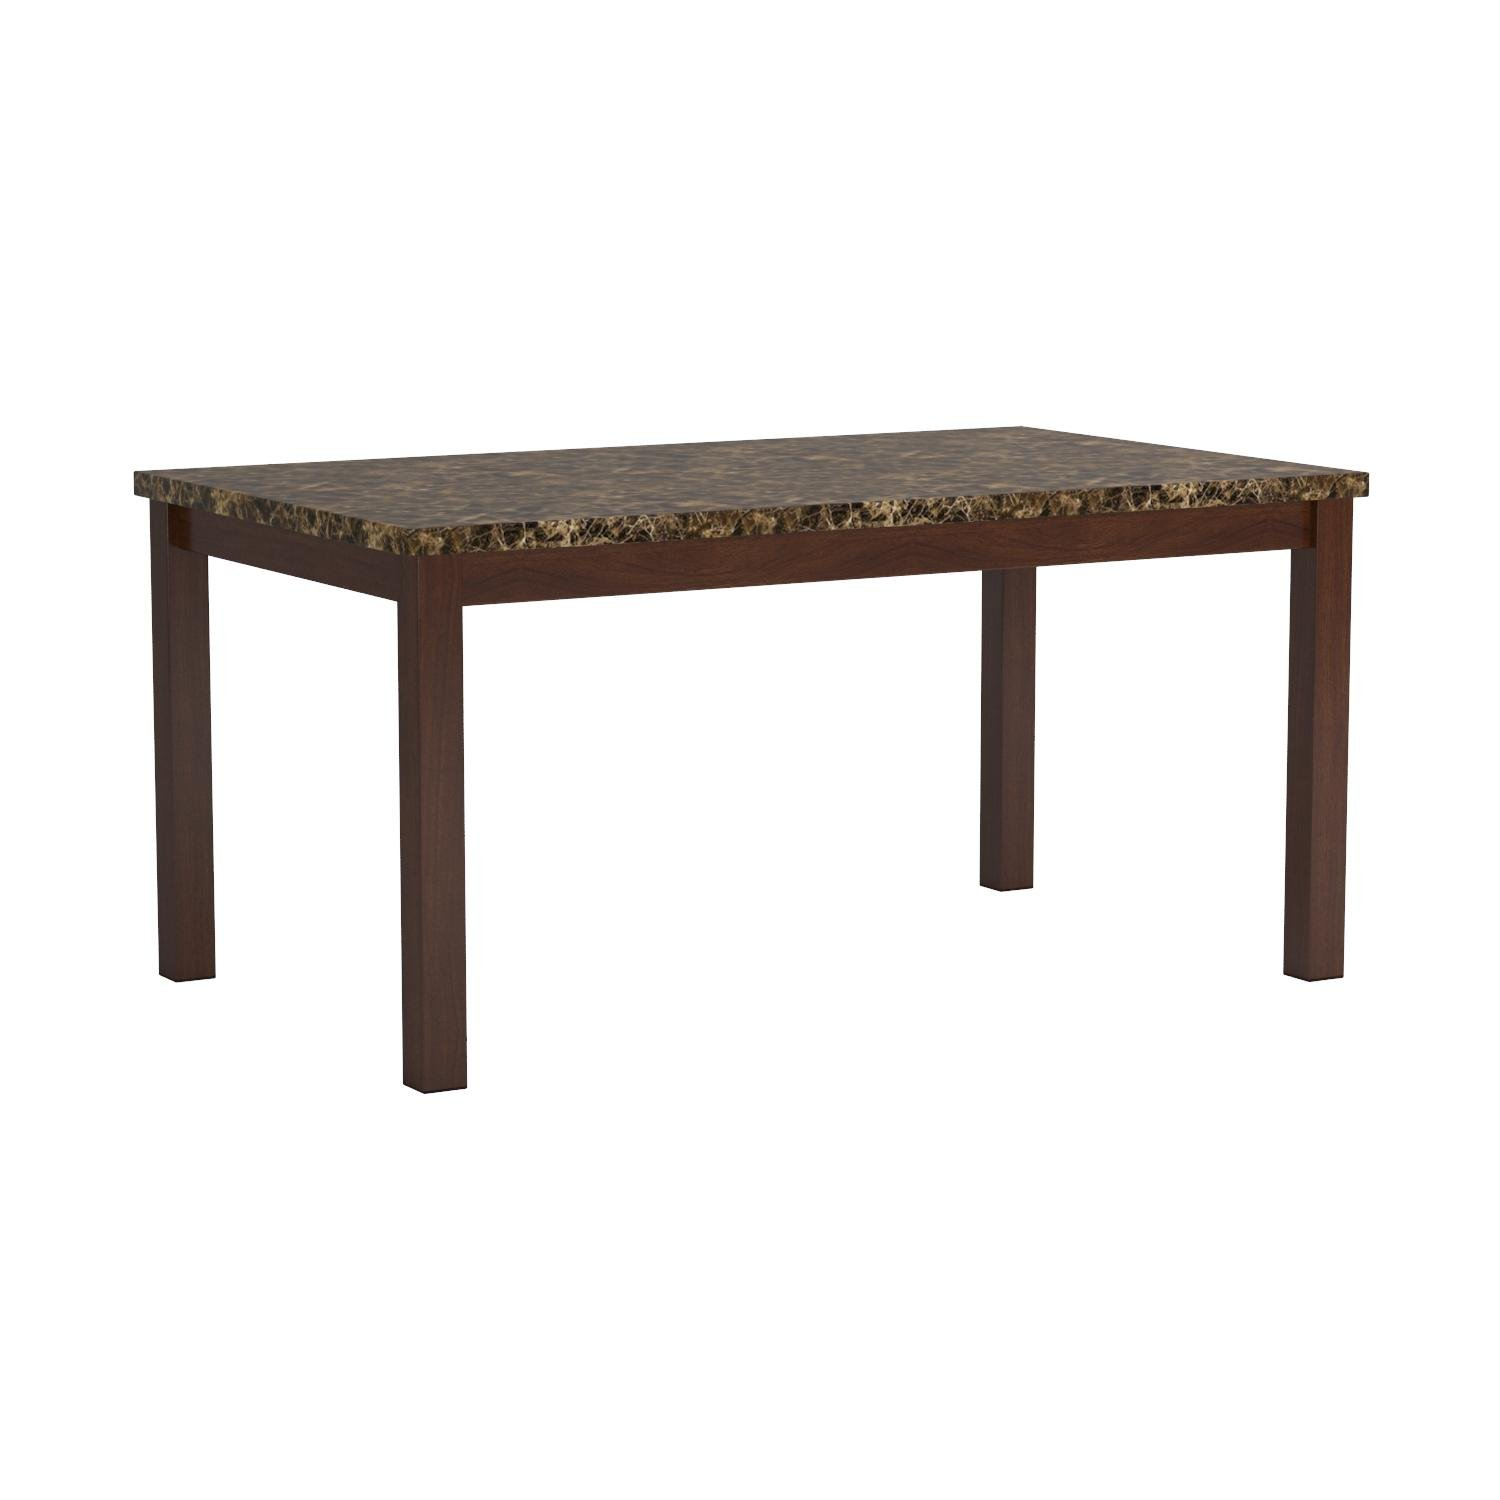 Telegraph Marble Top Dining Table Warm Brown by Coaster Home Furnishings